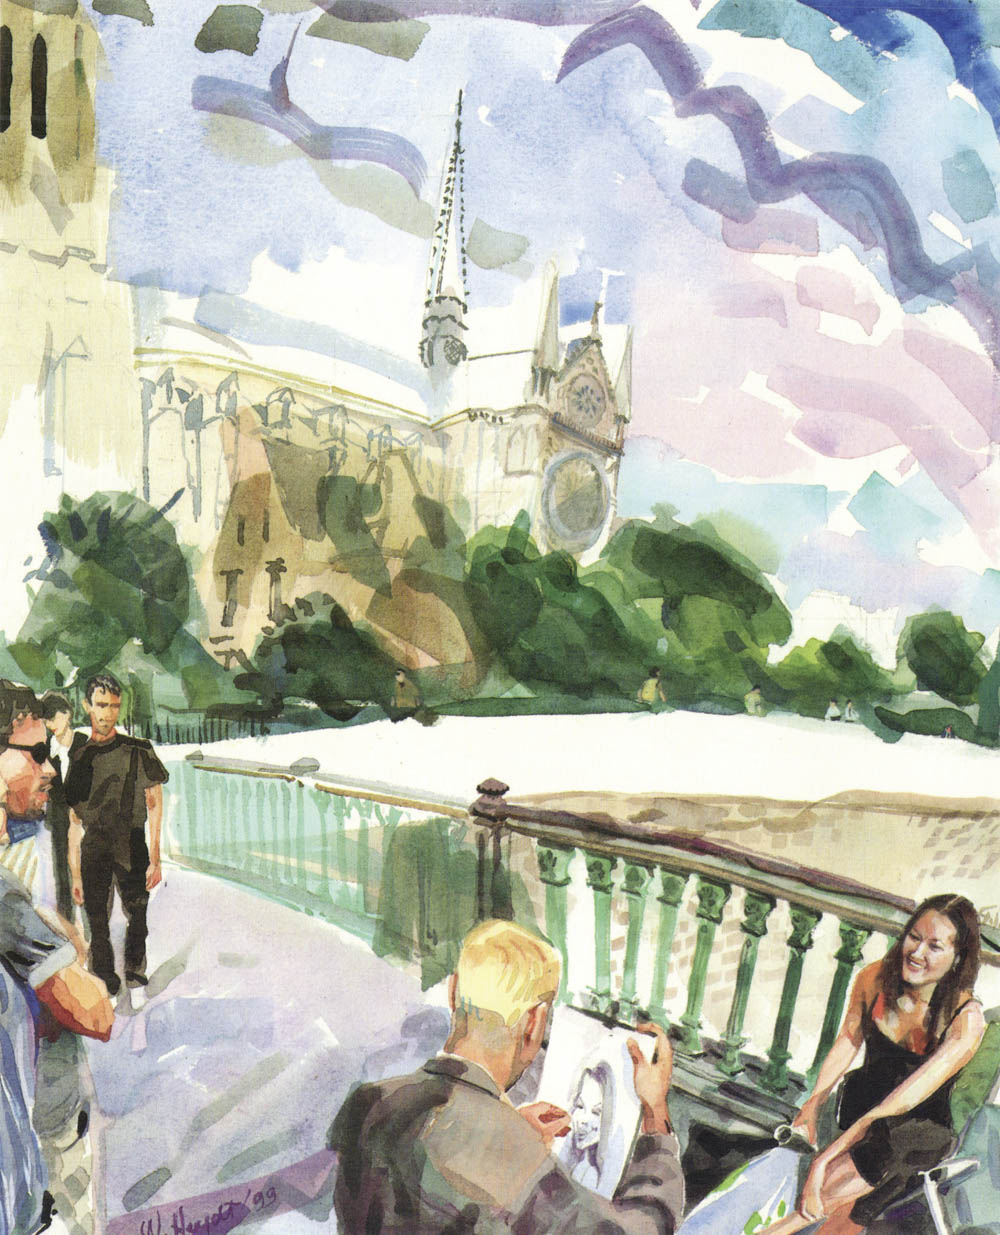 Fall breezes chill the air as an artist works - Pont au Double, Paris